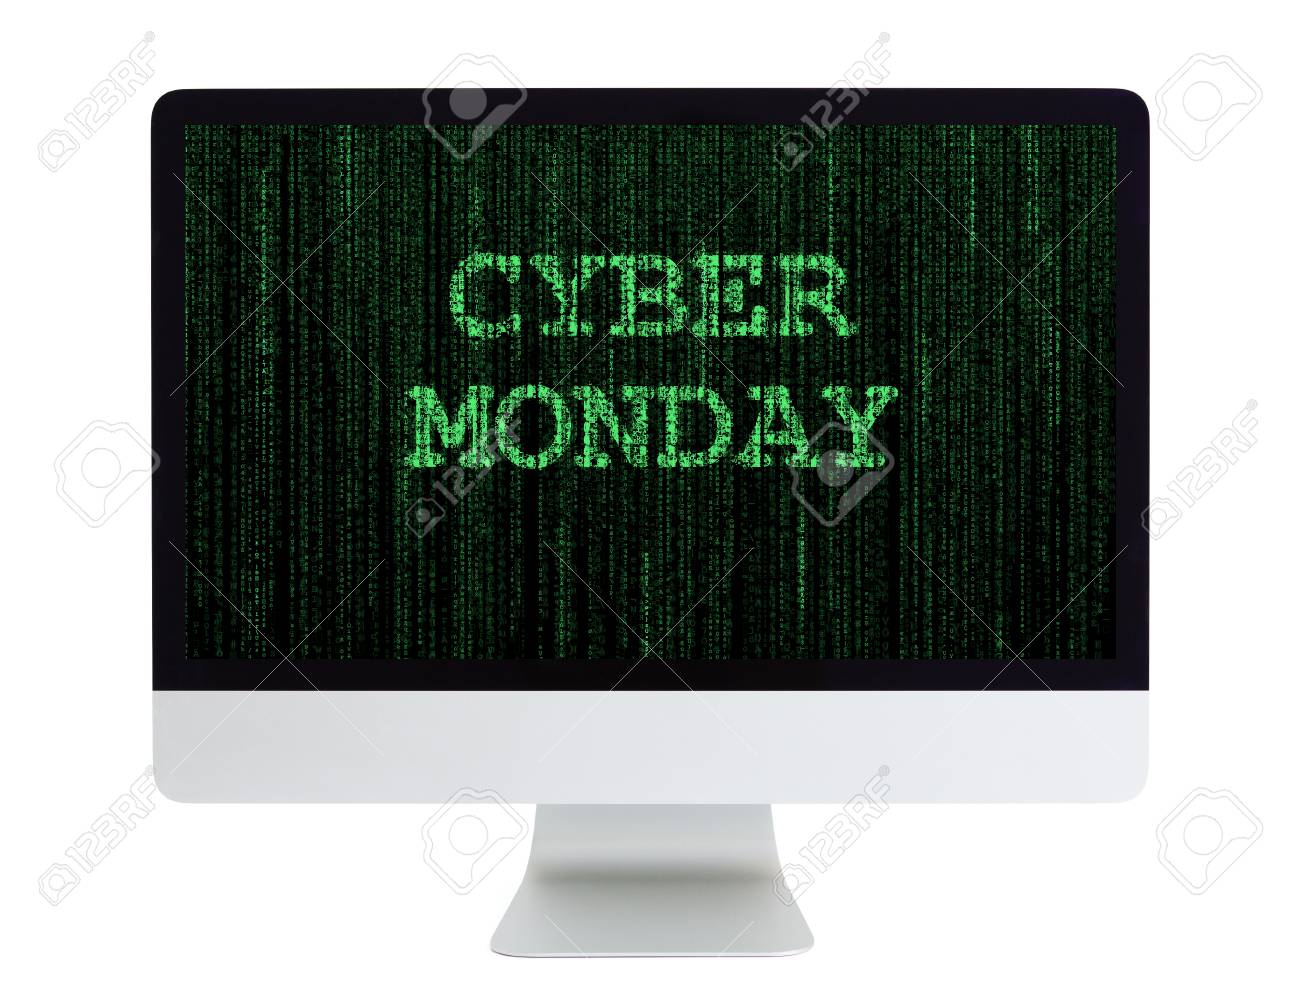 Desktop Computer With Cyber Monday On Its Screen Stock Photo Picture And Royalty Free Image Image 67739309